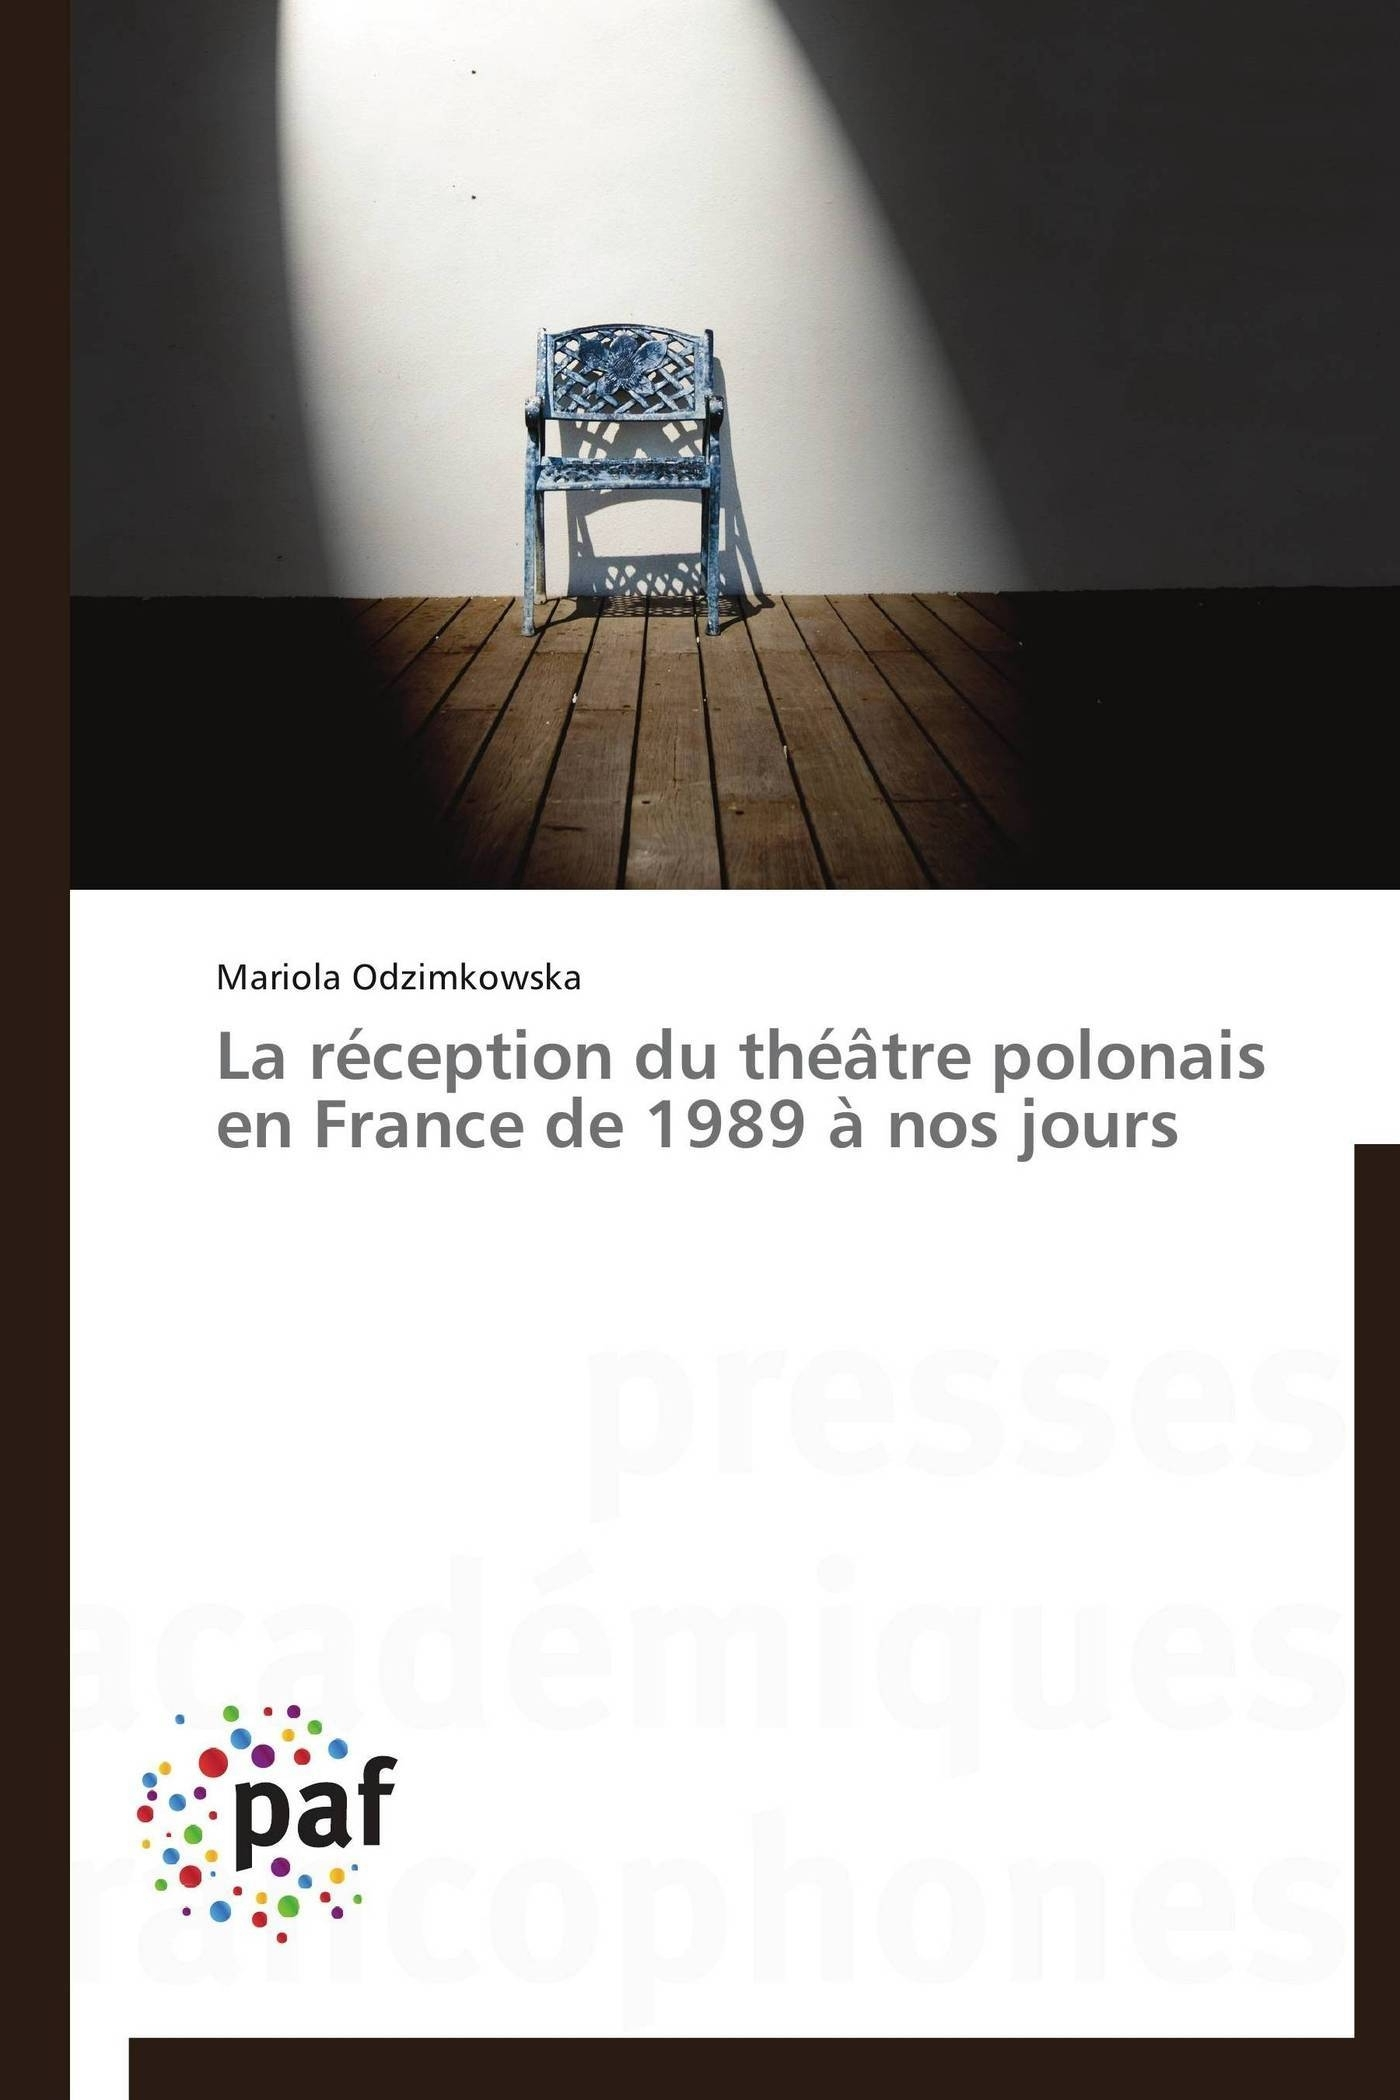 LA RECEPTION DU THEATRE POLONAIS EN FRANCE DE 1989 A NOS JOURS